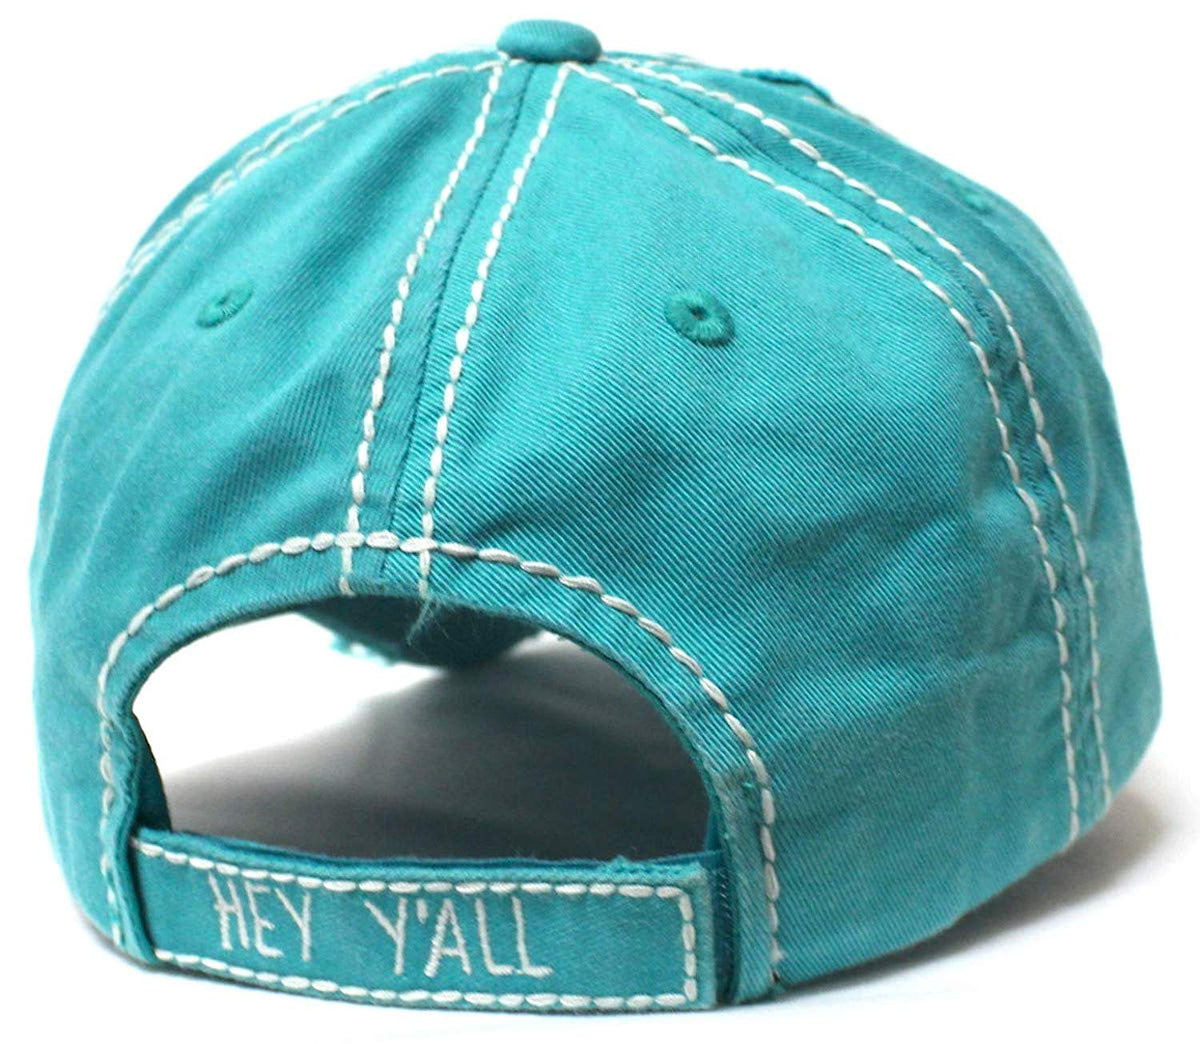 New!! Jewel Turquoise Hey Y'all Velvet Patch Emroidery Hat w/Heart Detail - Caps 'N Vintage